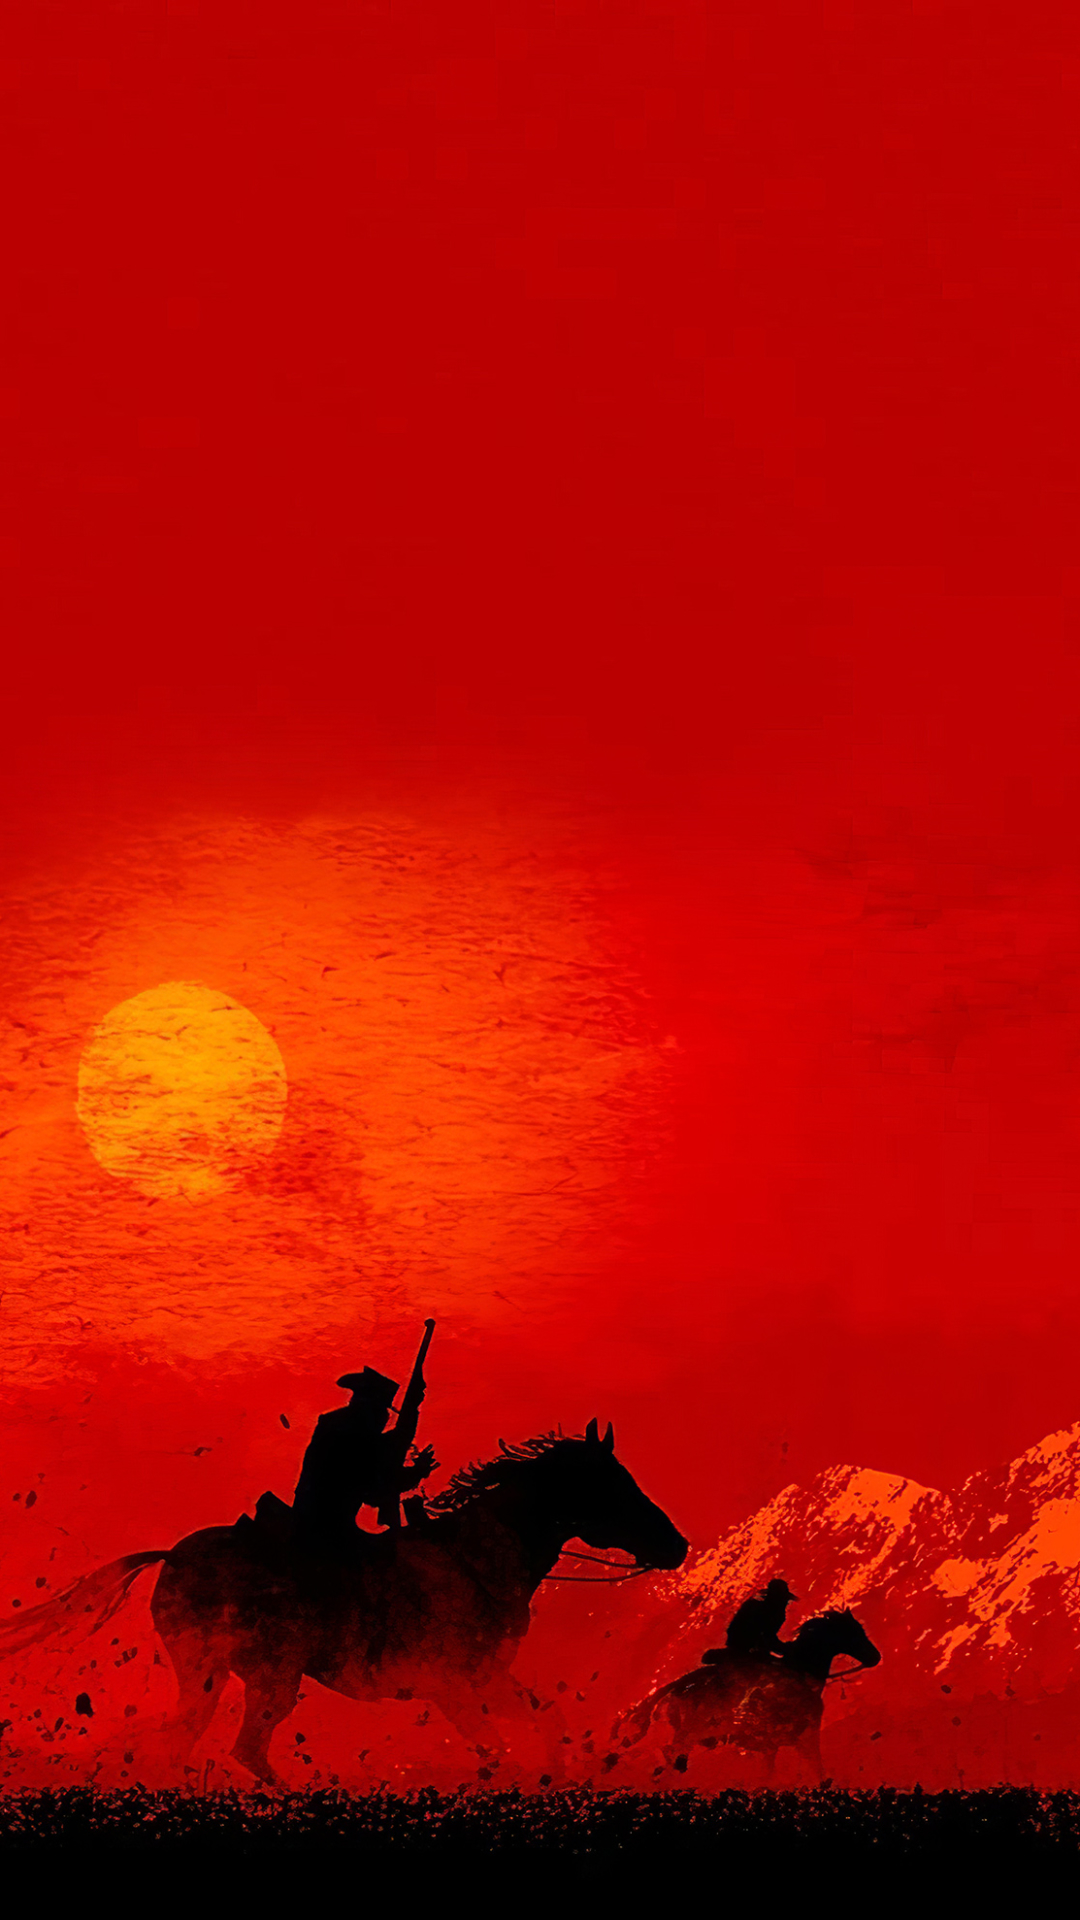 Video Game Red Dead Redemption 2 1080x1920 Wallpaper Id 825568